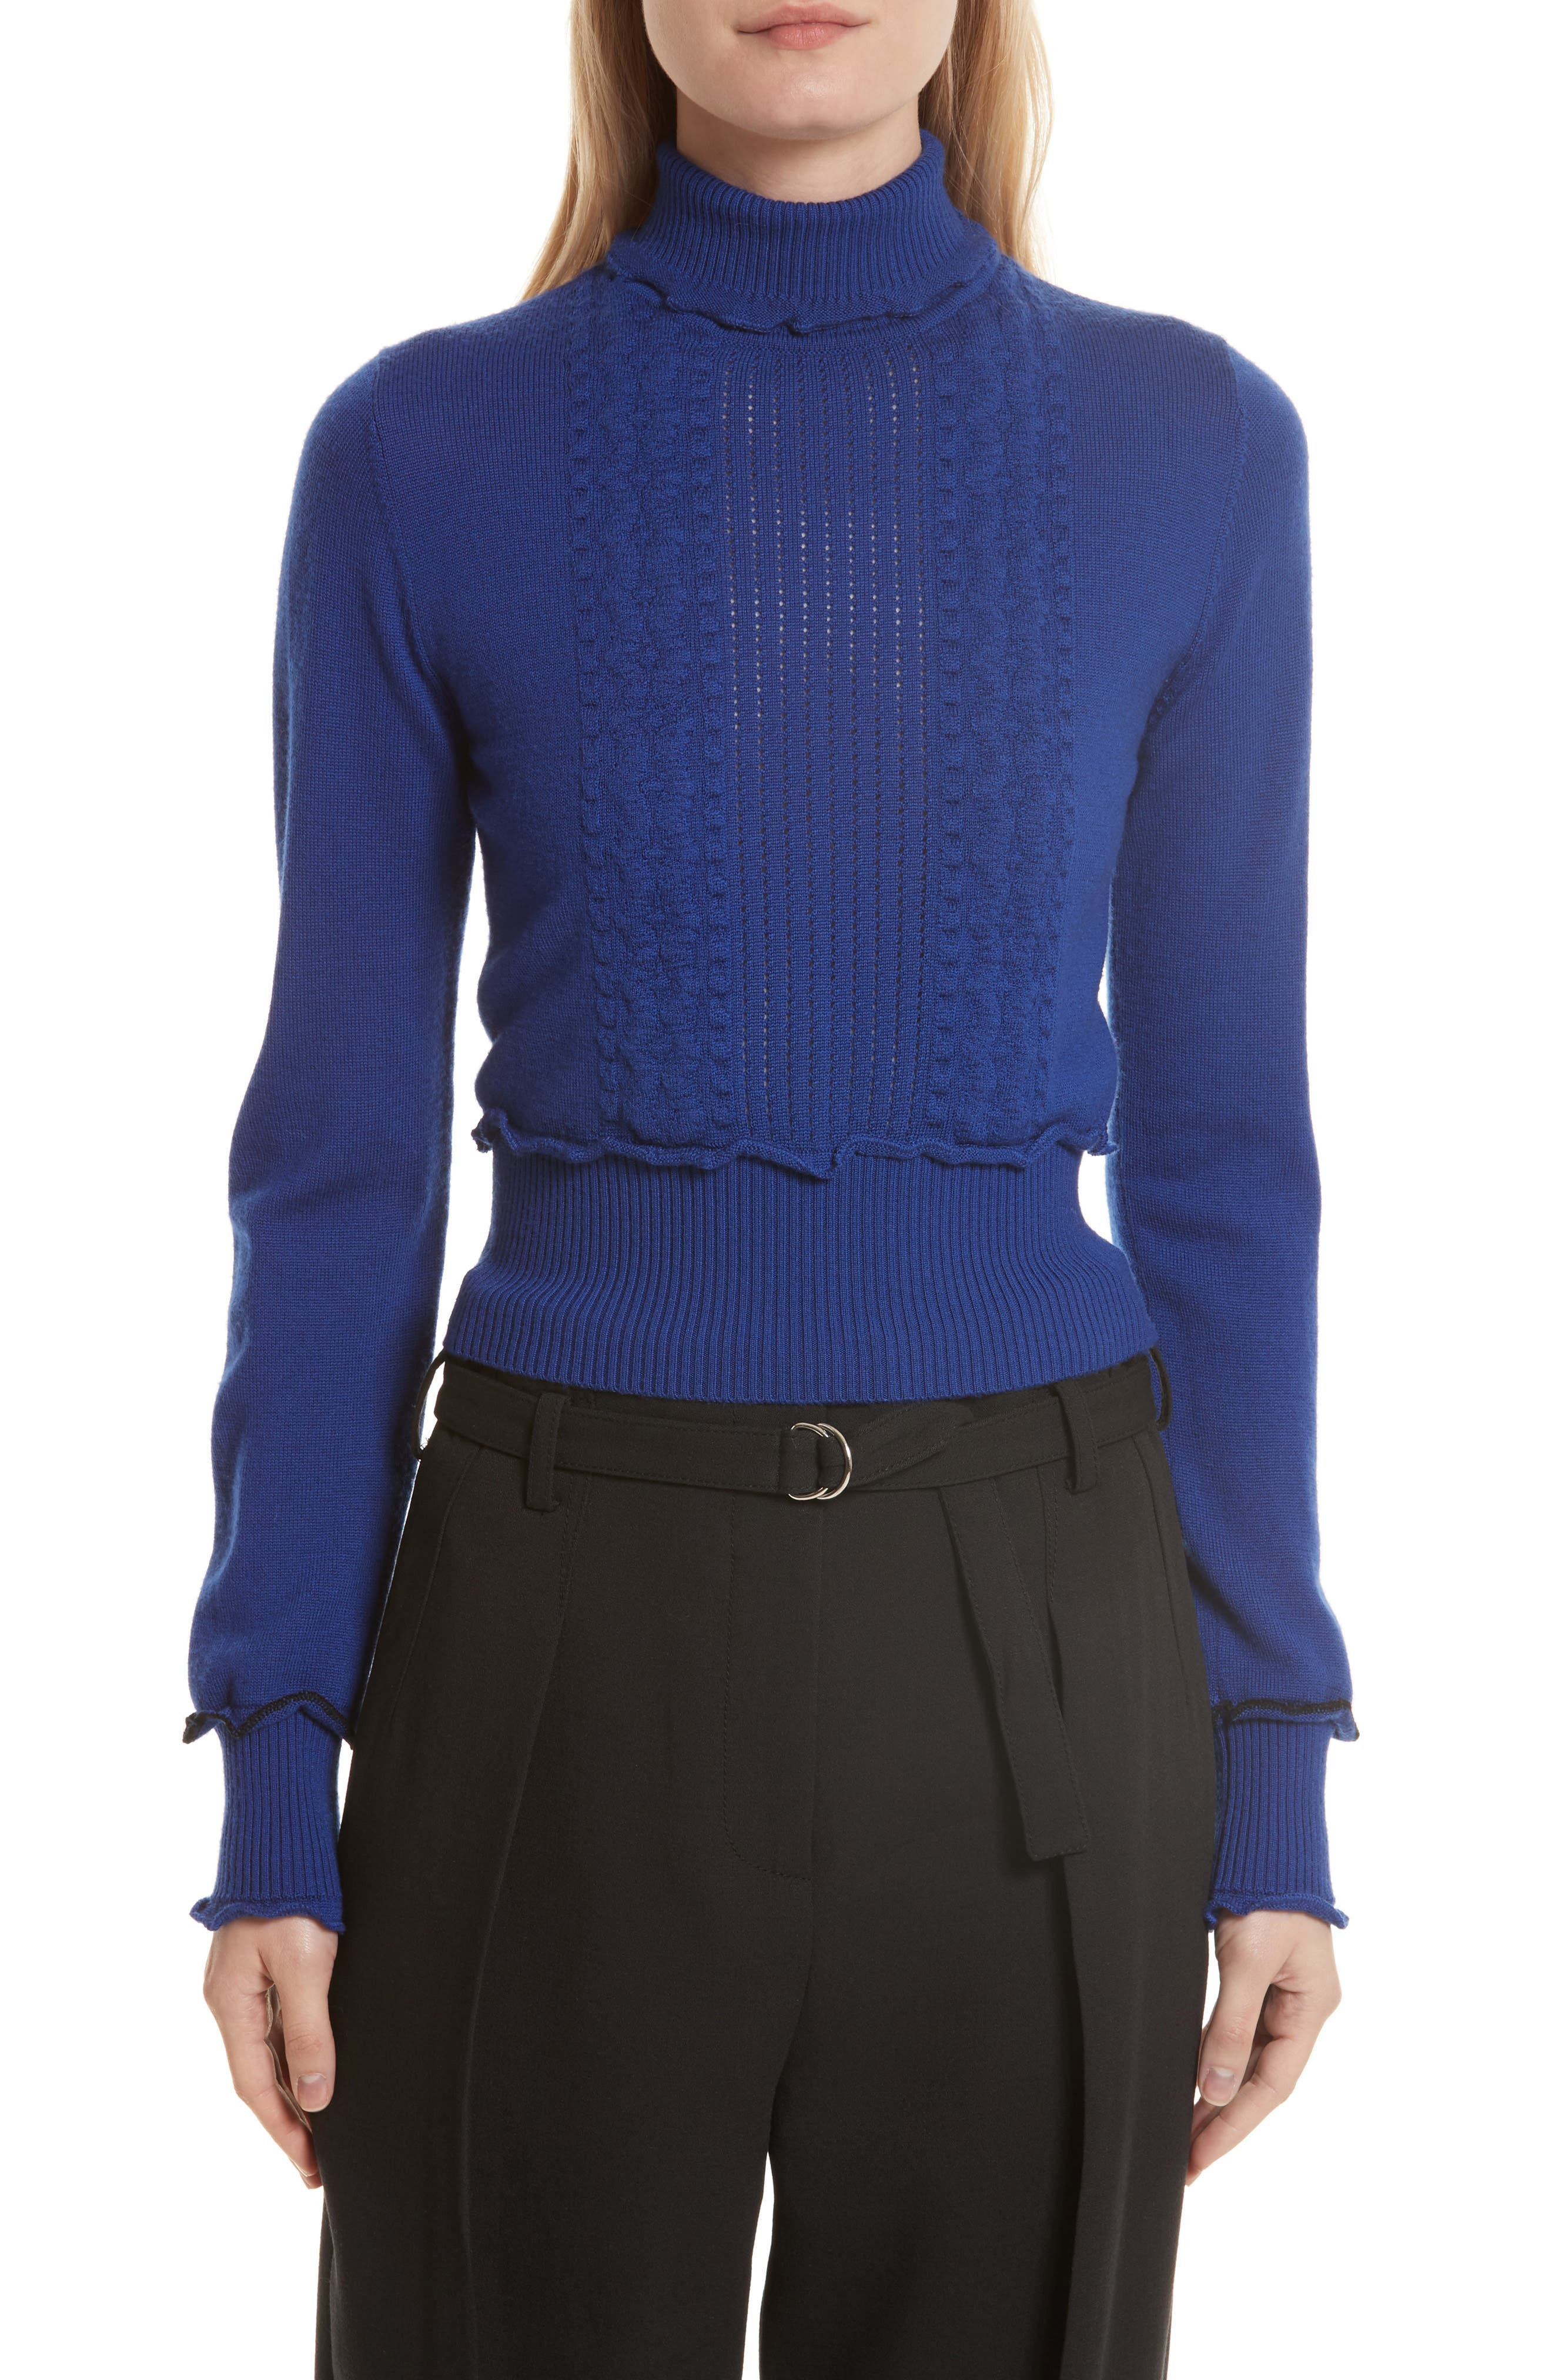 Alternate Image 1 Selected - 3.1 Phillip Lim Puffy Cable Turtleneck Sweater